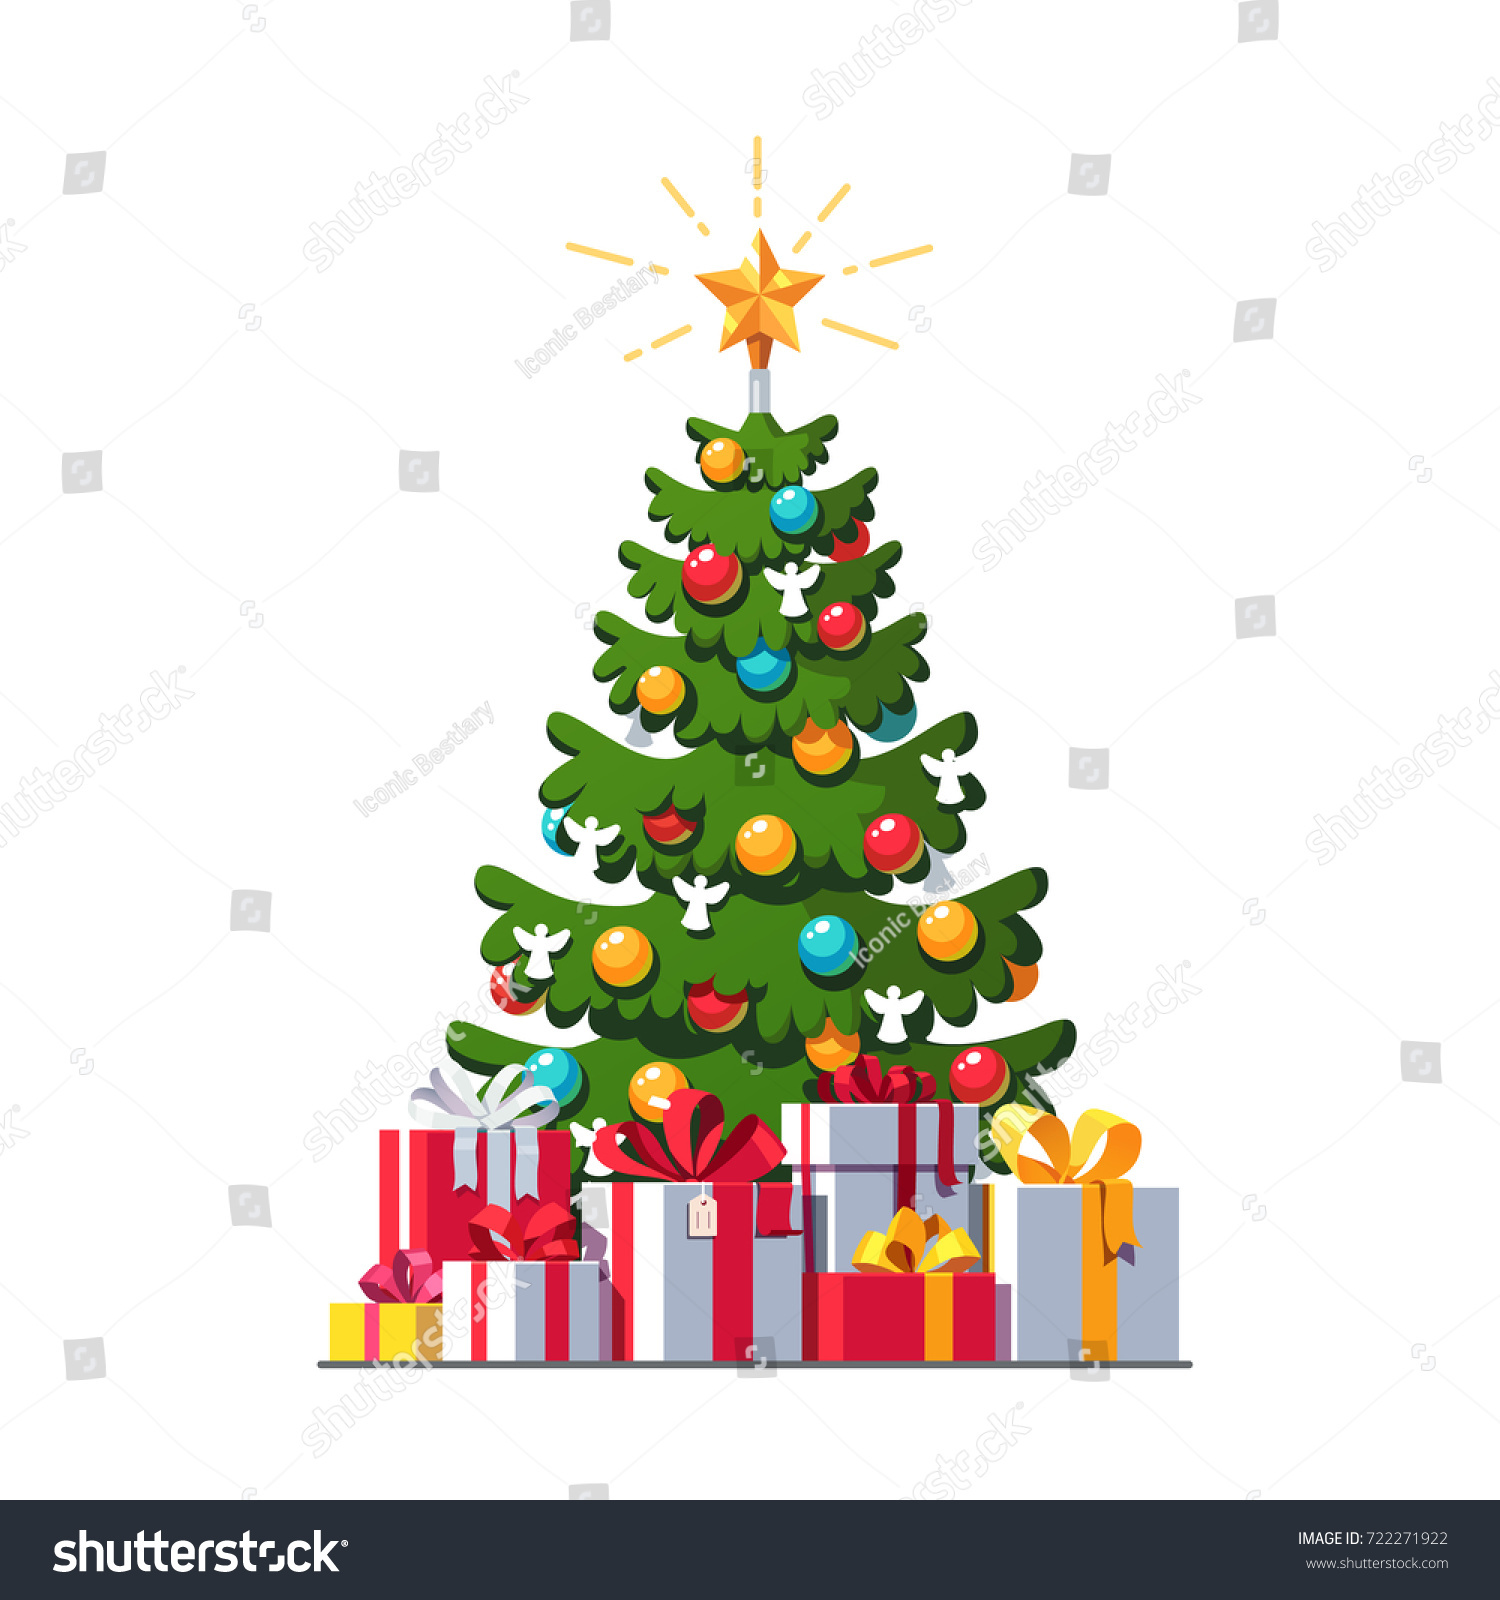 Presents Under The Christmas Tree: Big Colorful Wrapped Gift Boxes Pile Stock Vector